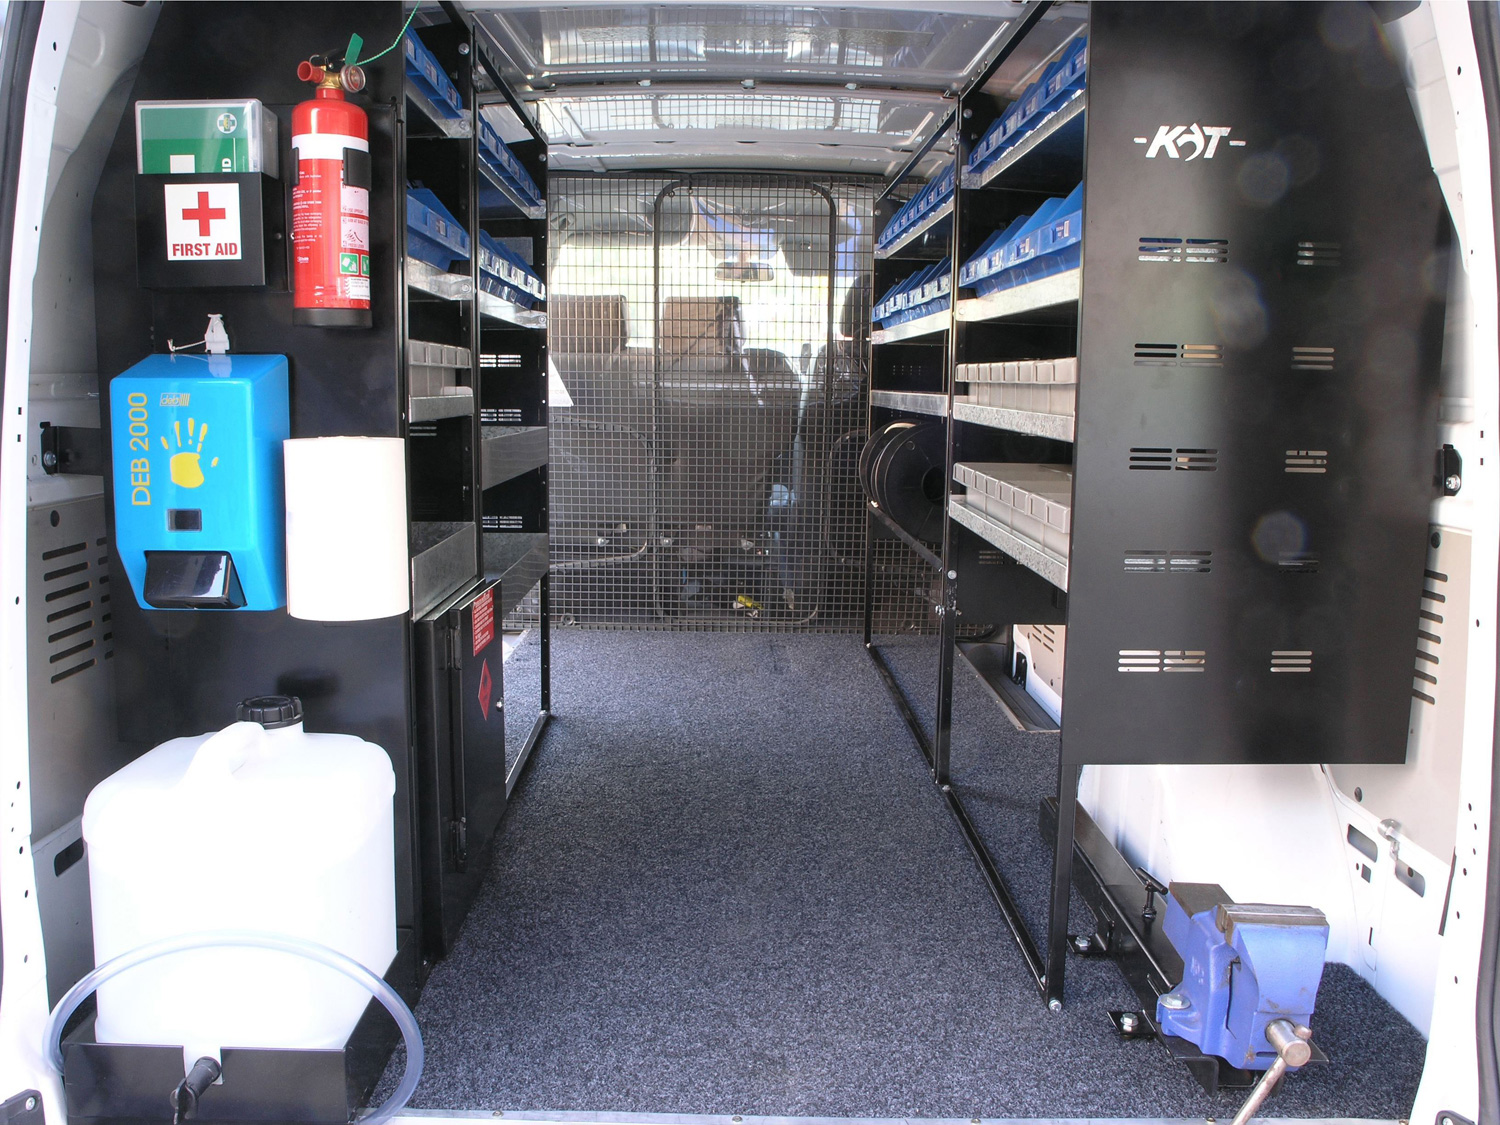 Affordable Van Shelving Ute Racking Slide Drawers And Vehicle Accessories For All Vans And Utes